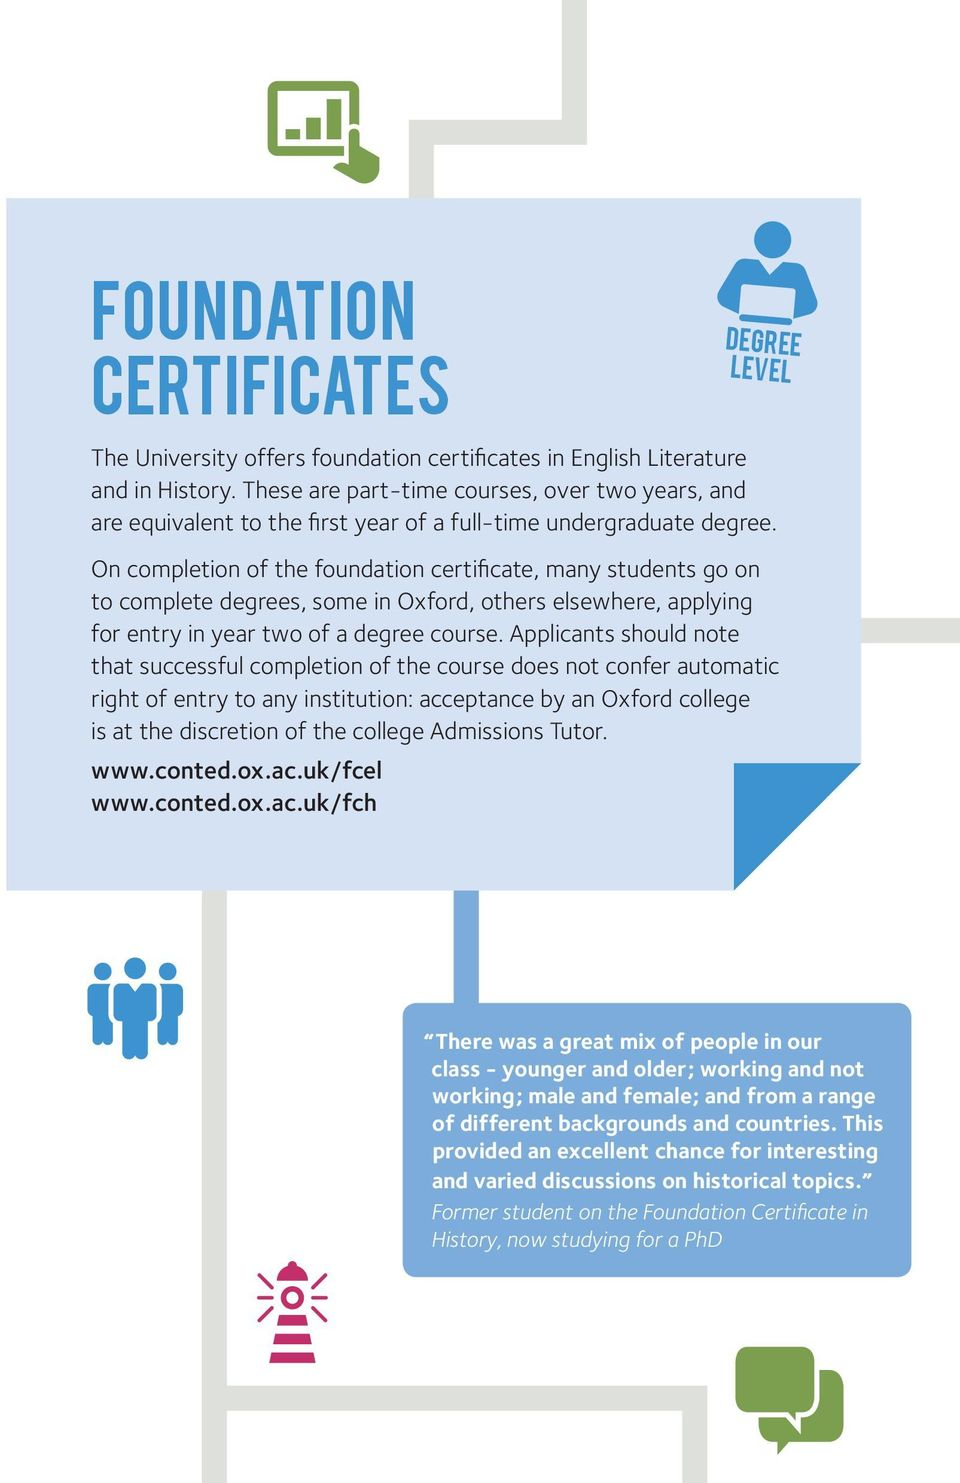 On completion of the foundation certificate, many students go on to complete degrees, some in Oxford, others elsewhere, applying for entry in year two of a degree course.